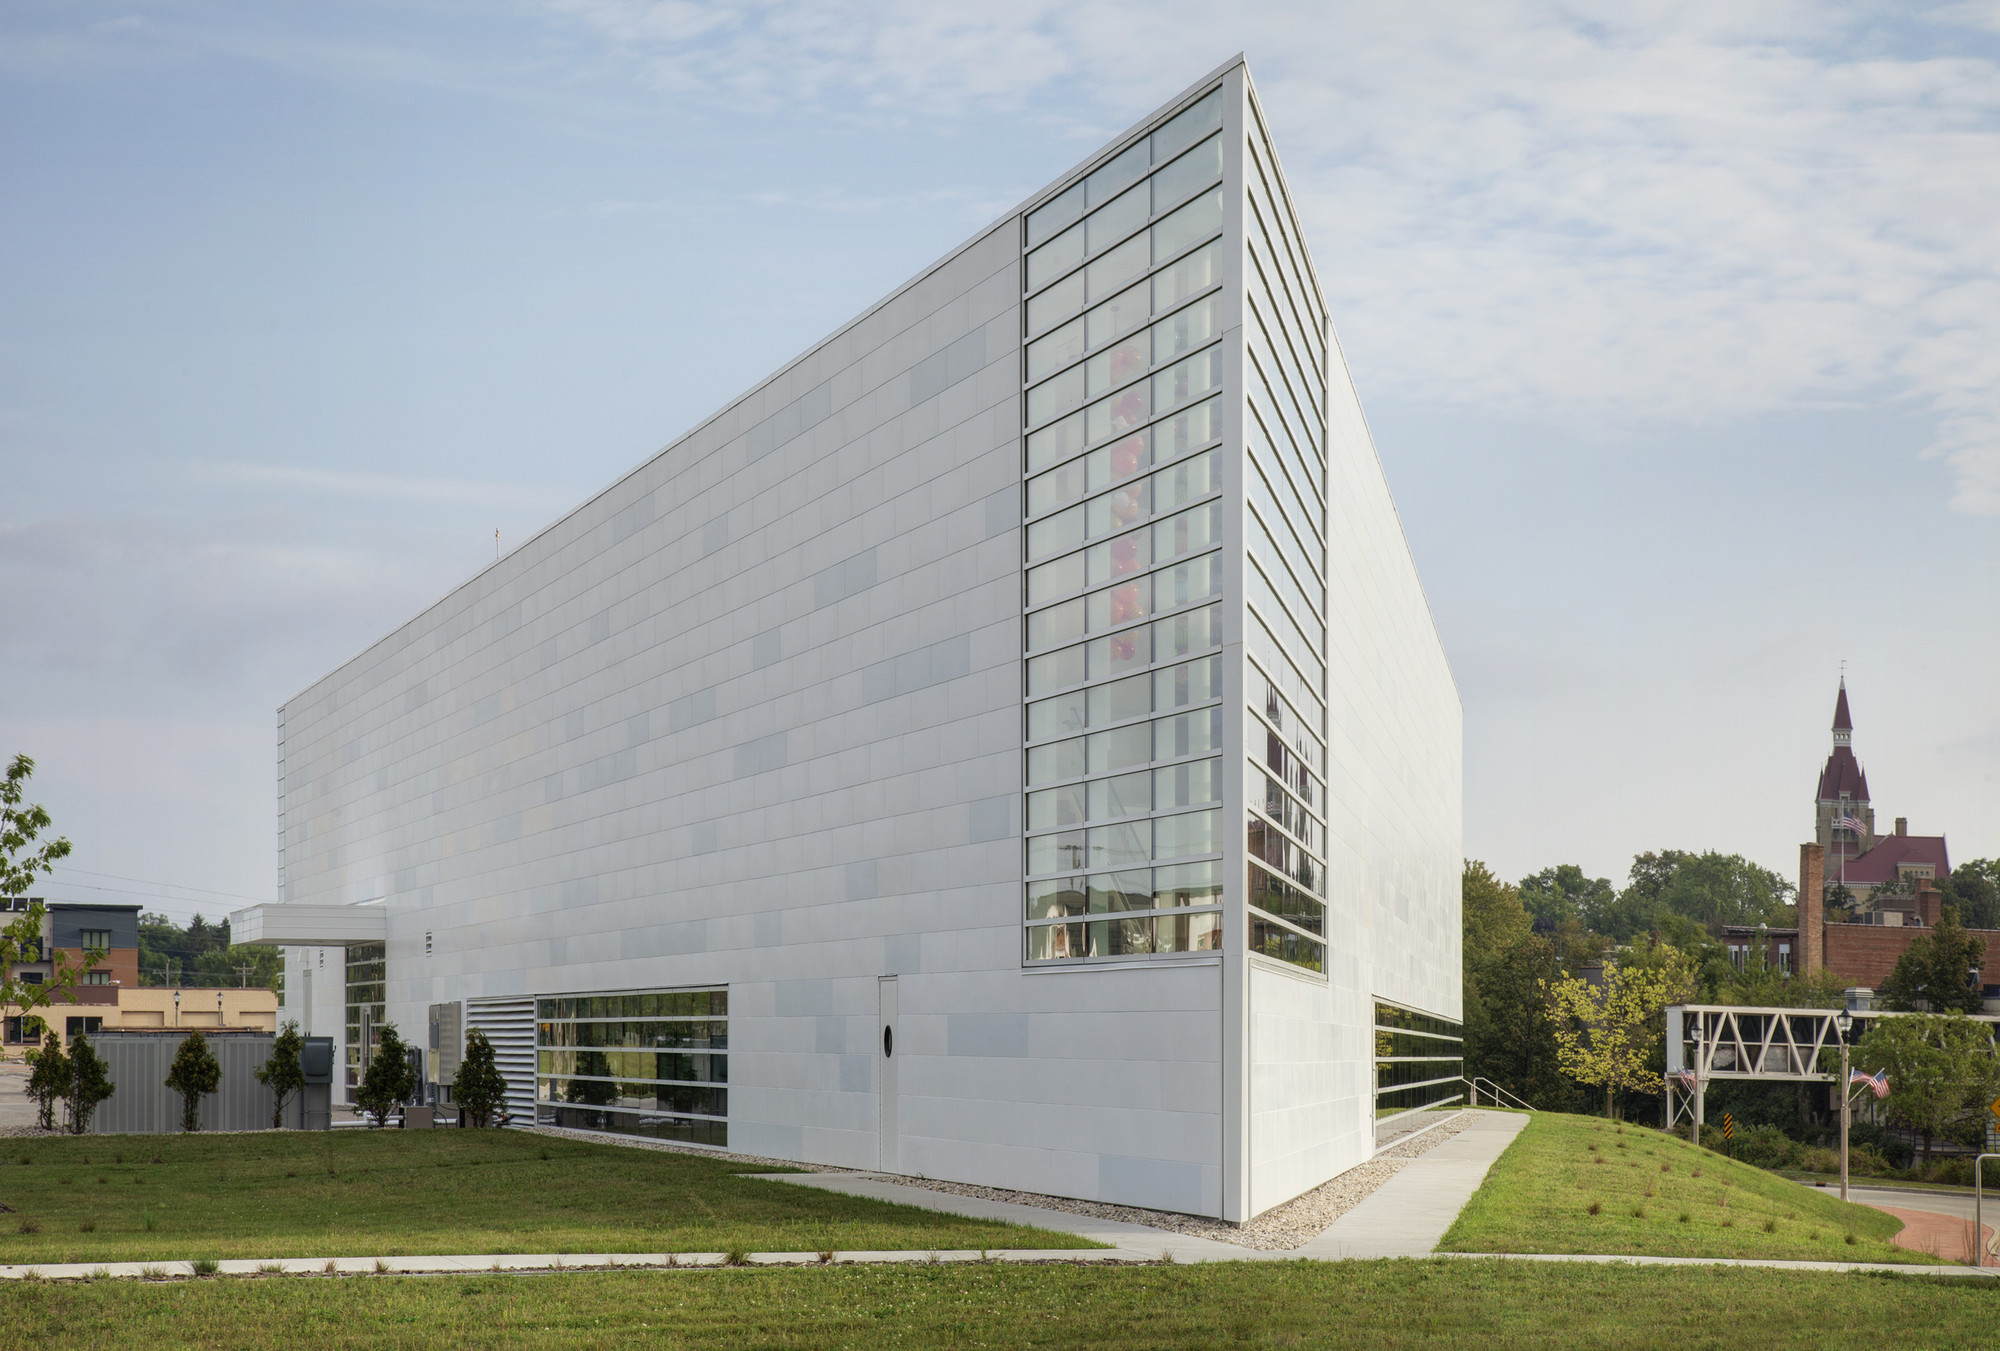 MUSEUM OF WISCONSIN ART (MOWA) / HGA Architects and Engineers, © Darris Lee Harris